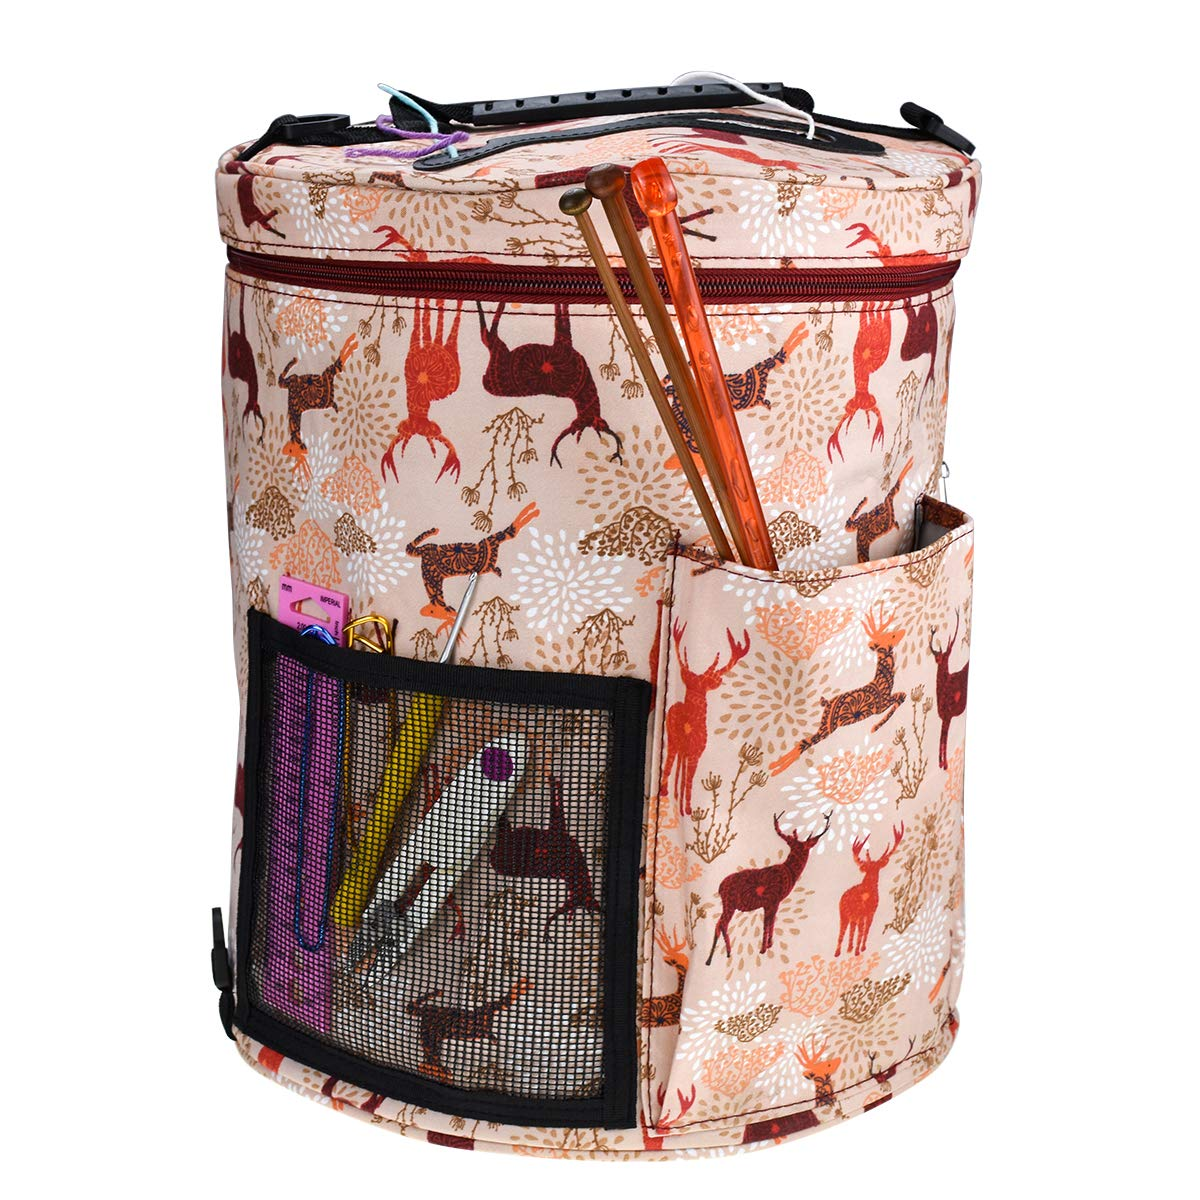 Knitting Yarn Storage Bag High Capacity,Durable,Porable,Tote Organize Pocket Crochet Hooks/Knitting Needles,Project,Supplies,Slits On Top to Project Wool and Prevent Tangle